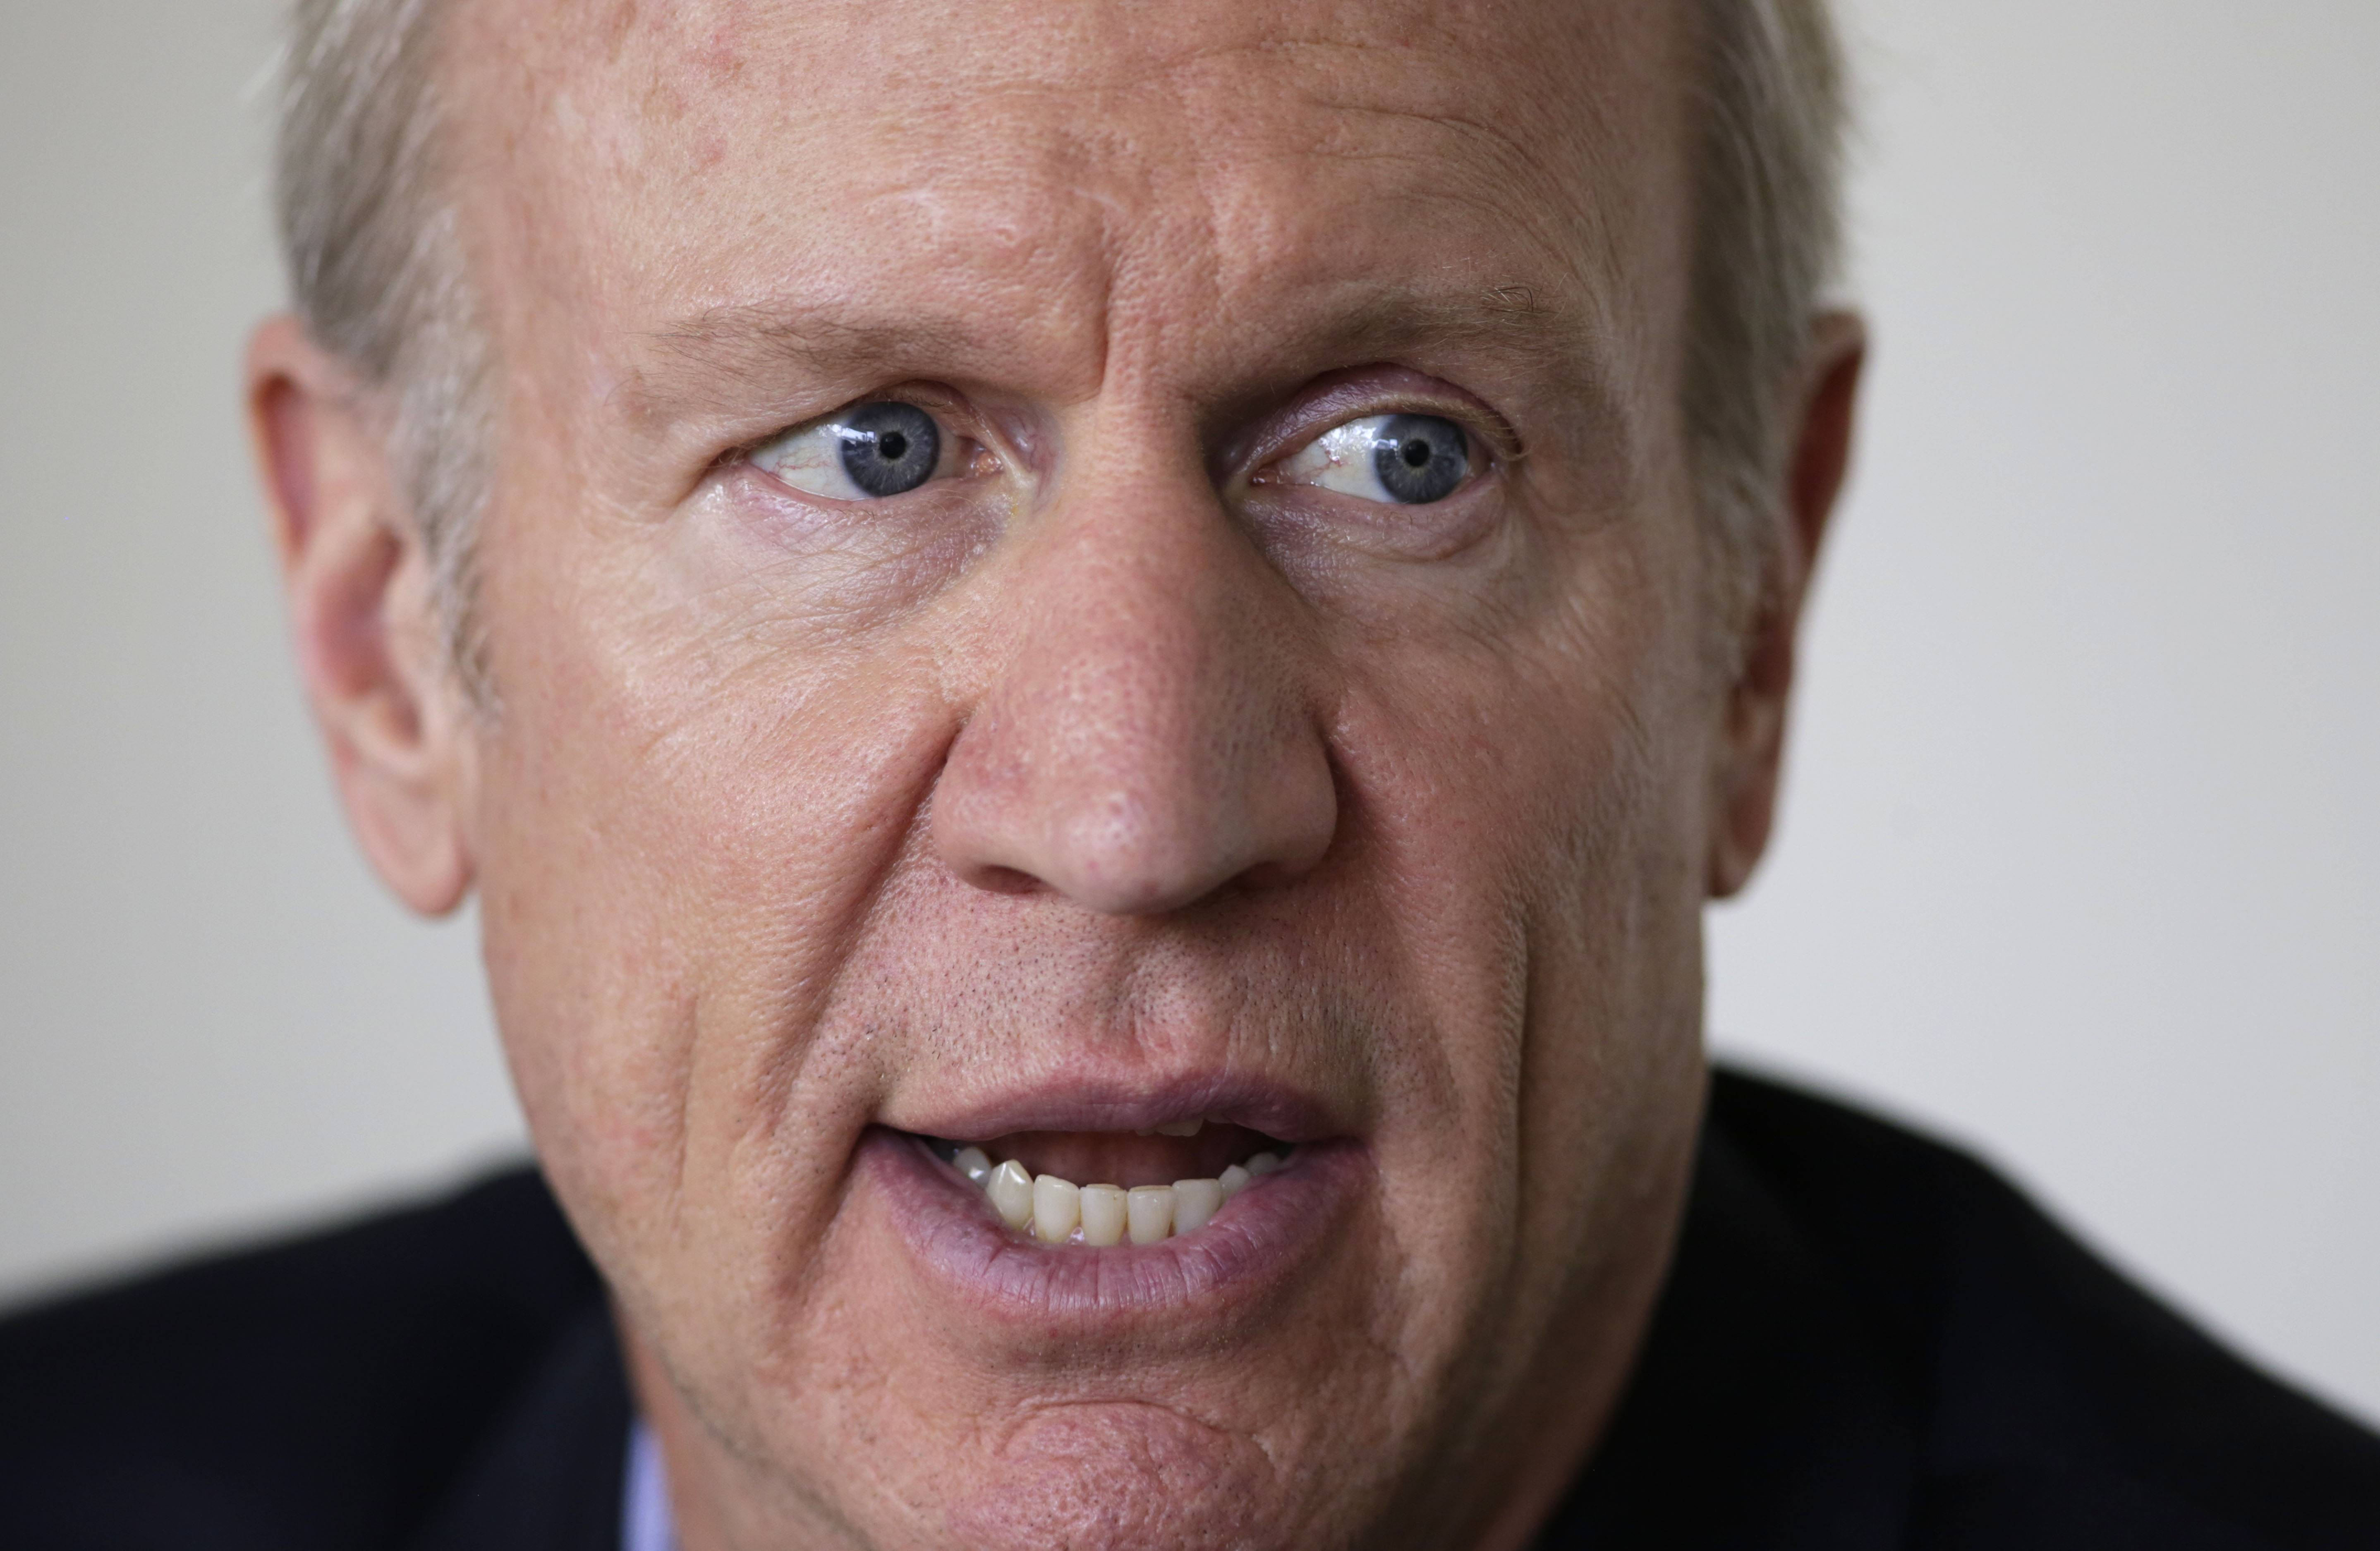 To get much of what he wants to accomplish, Gov. Bruce Rauner will need Illinois' Democratic-majority General Assembly to pass his initiatives and move legislation to his desk for signing.